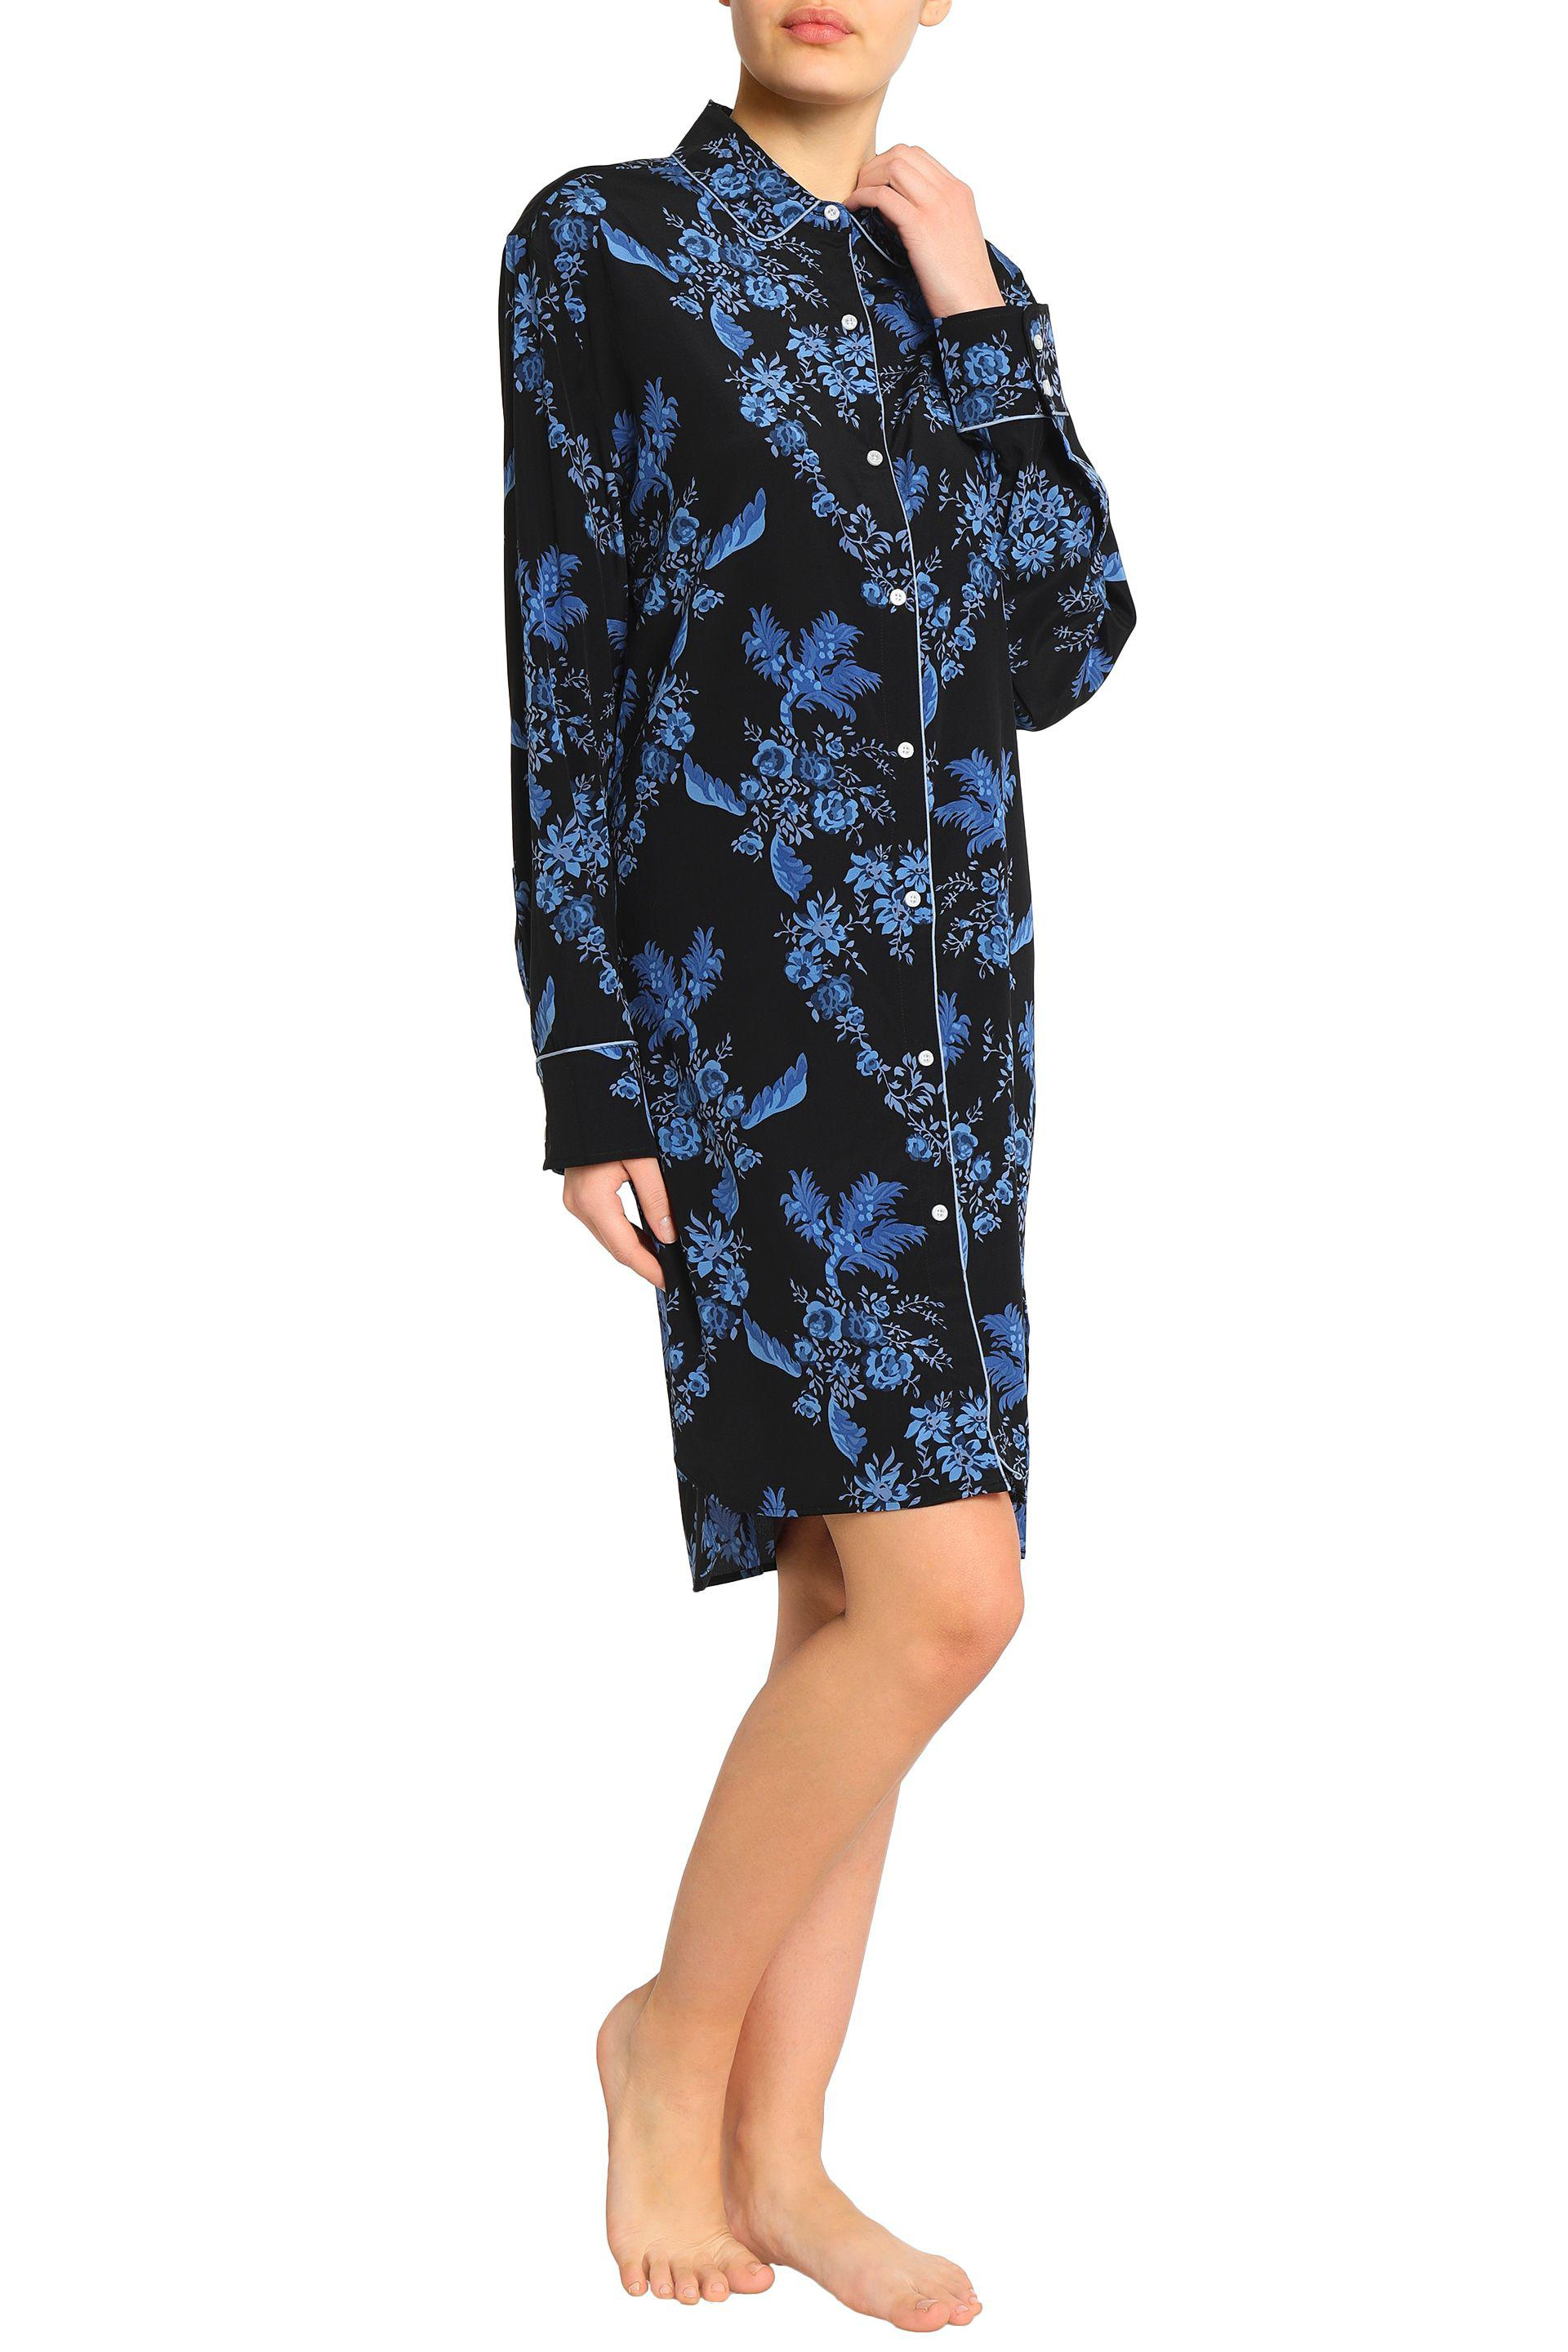 Stella Mccartney Woman Floral-print Stretch-silk Nightshirt Black Size S Stella McCartney Pay With Paypal Online Marketable In China For Sale Popular UXue8OuX